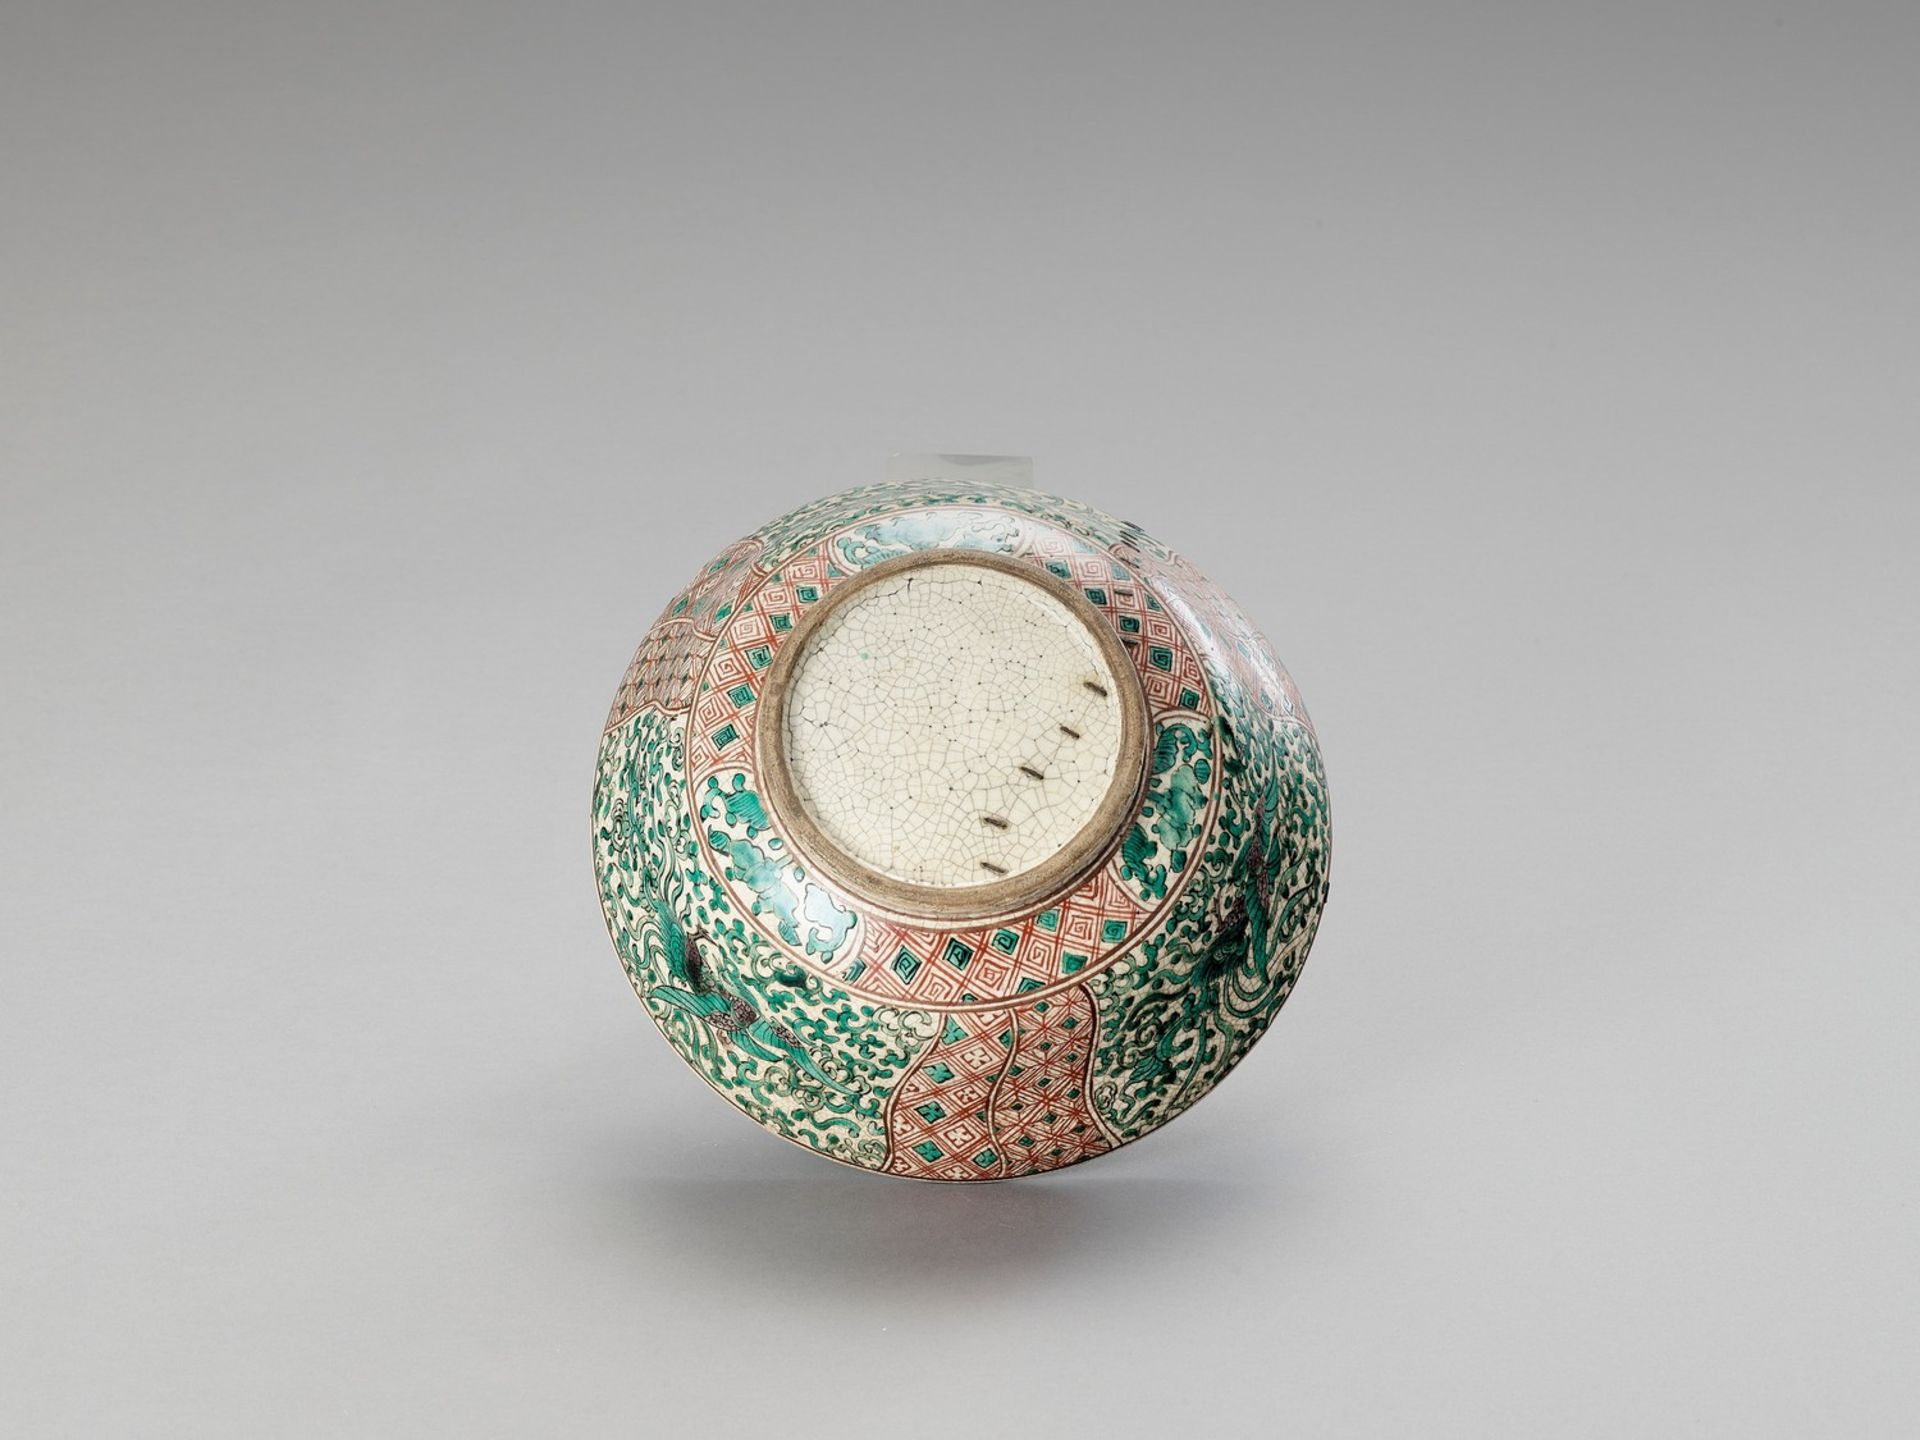 A FAMILLE VERTE CRACKLE-GLAZED BOWL - Image 6 of 6